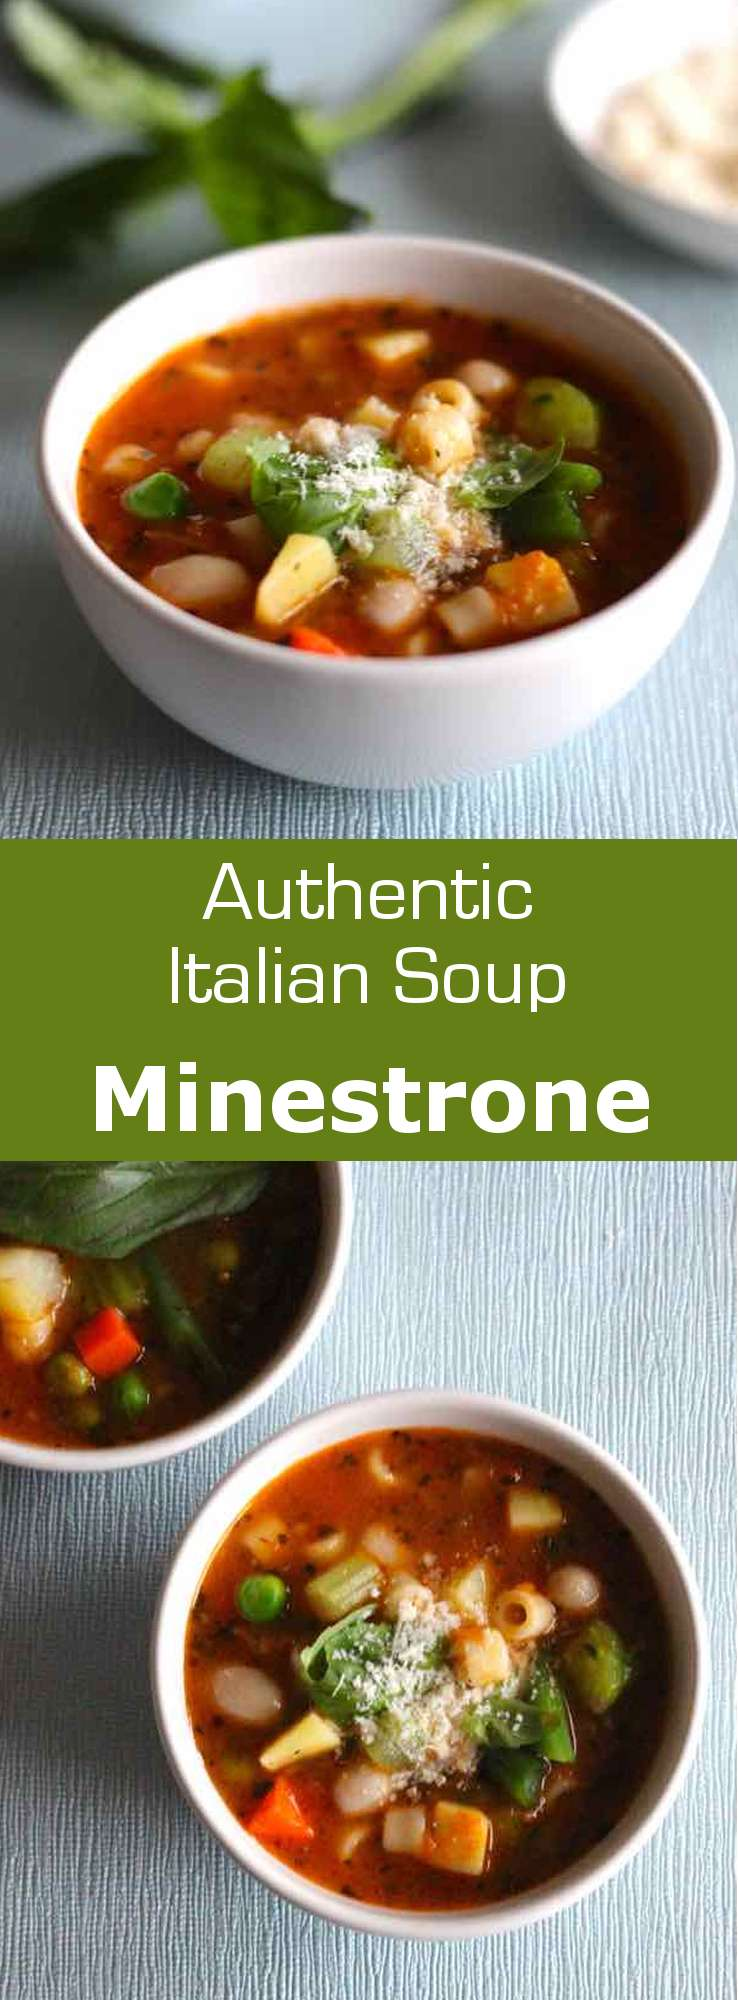 From Italian minestra (soup or to serve), minestrone refers to a preparation of fresh cut seasonal vegetables that are cooked in a broth. #vegetarian #soup #Italian #Italy #196flavors